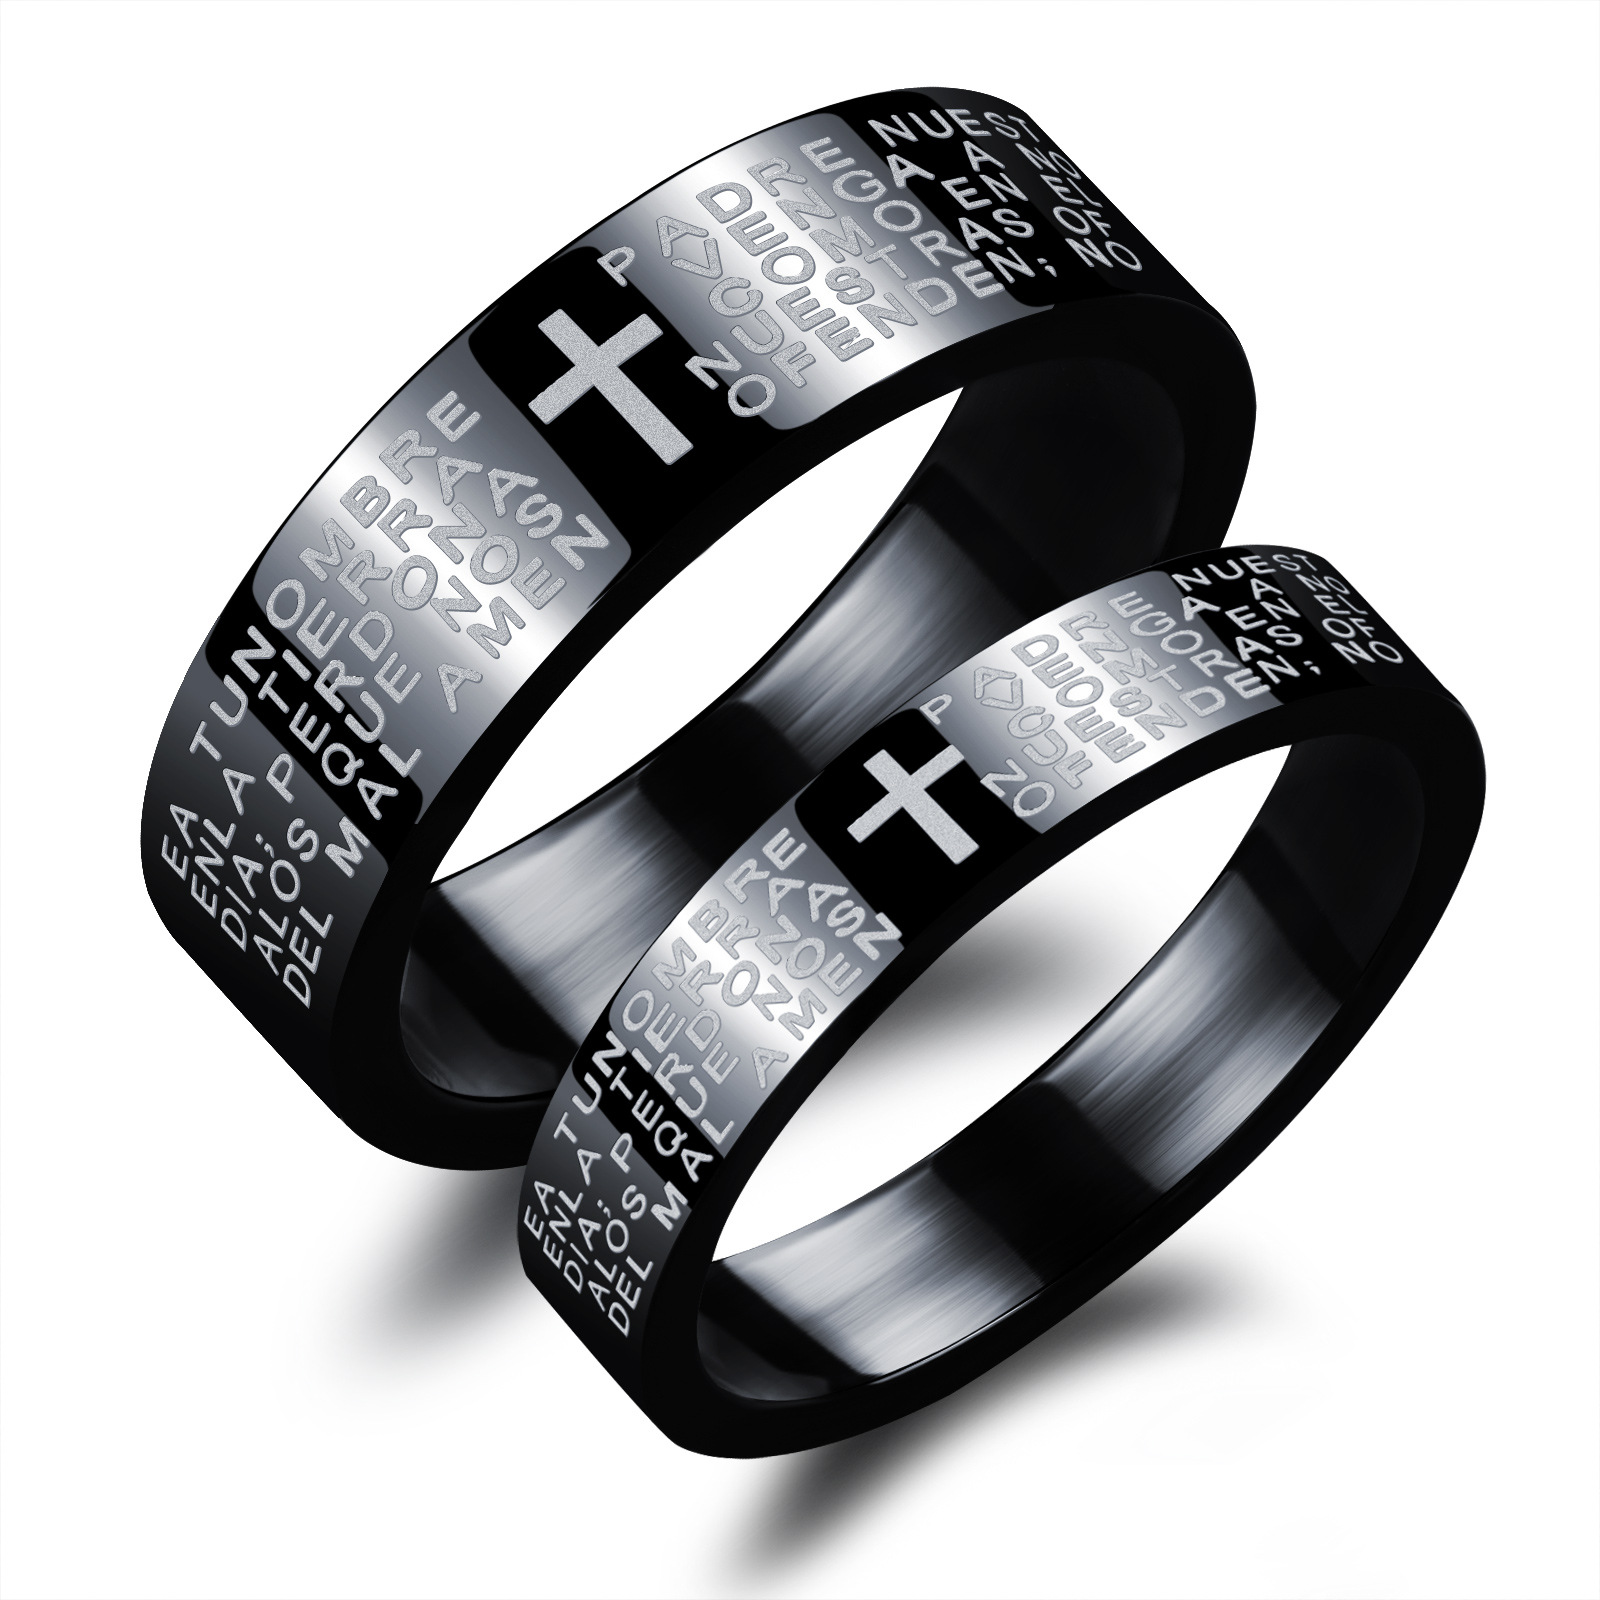 Spanish Bible Cross Black Couple Rings Set Unique Stainless Steel Wedding  Band His And Hers Anniversary Gift For Lovers Parent